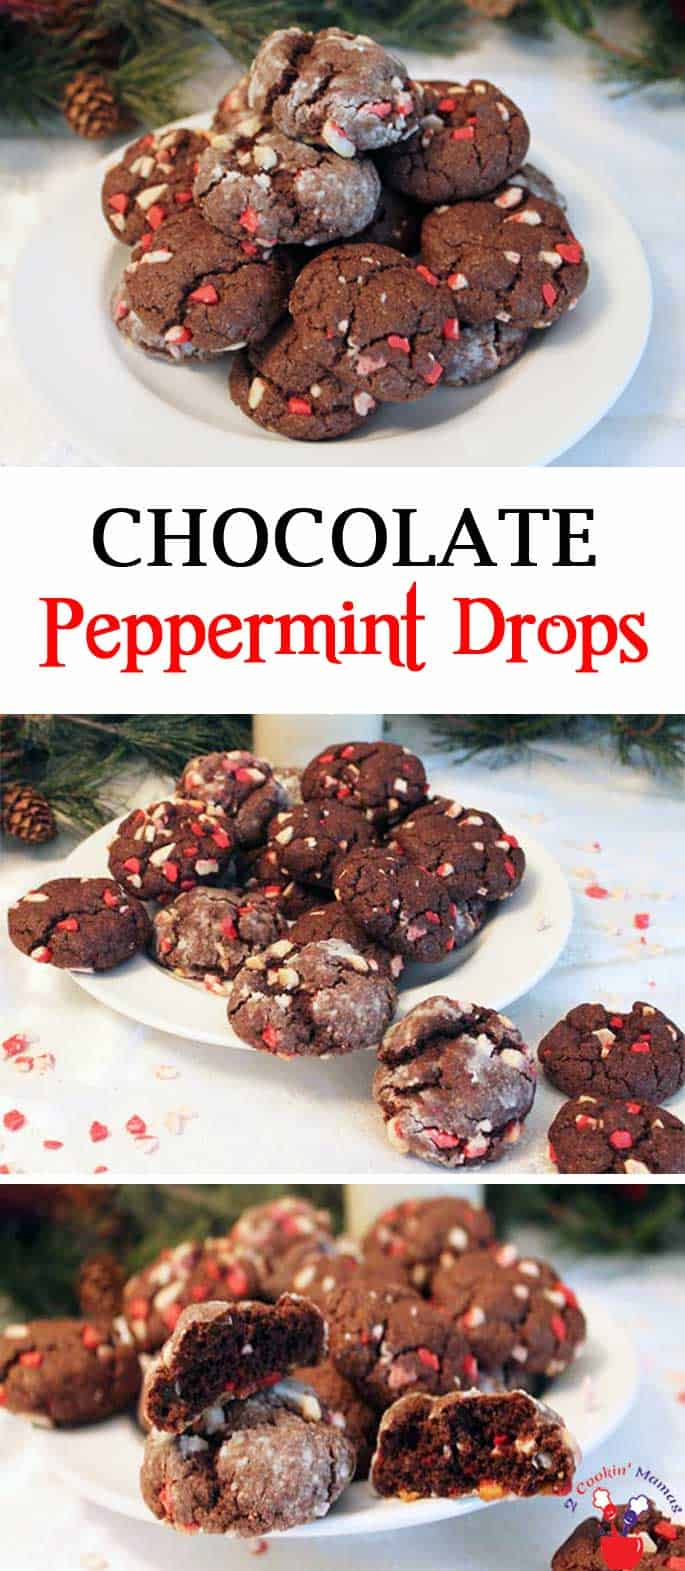 Chocolate Peppermint Drops are simple to make. Just a boxed cake mix & 3 ingredients for chocolaty, minty cookies perfect for the season.